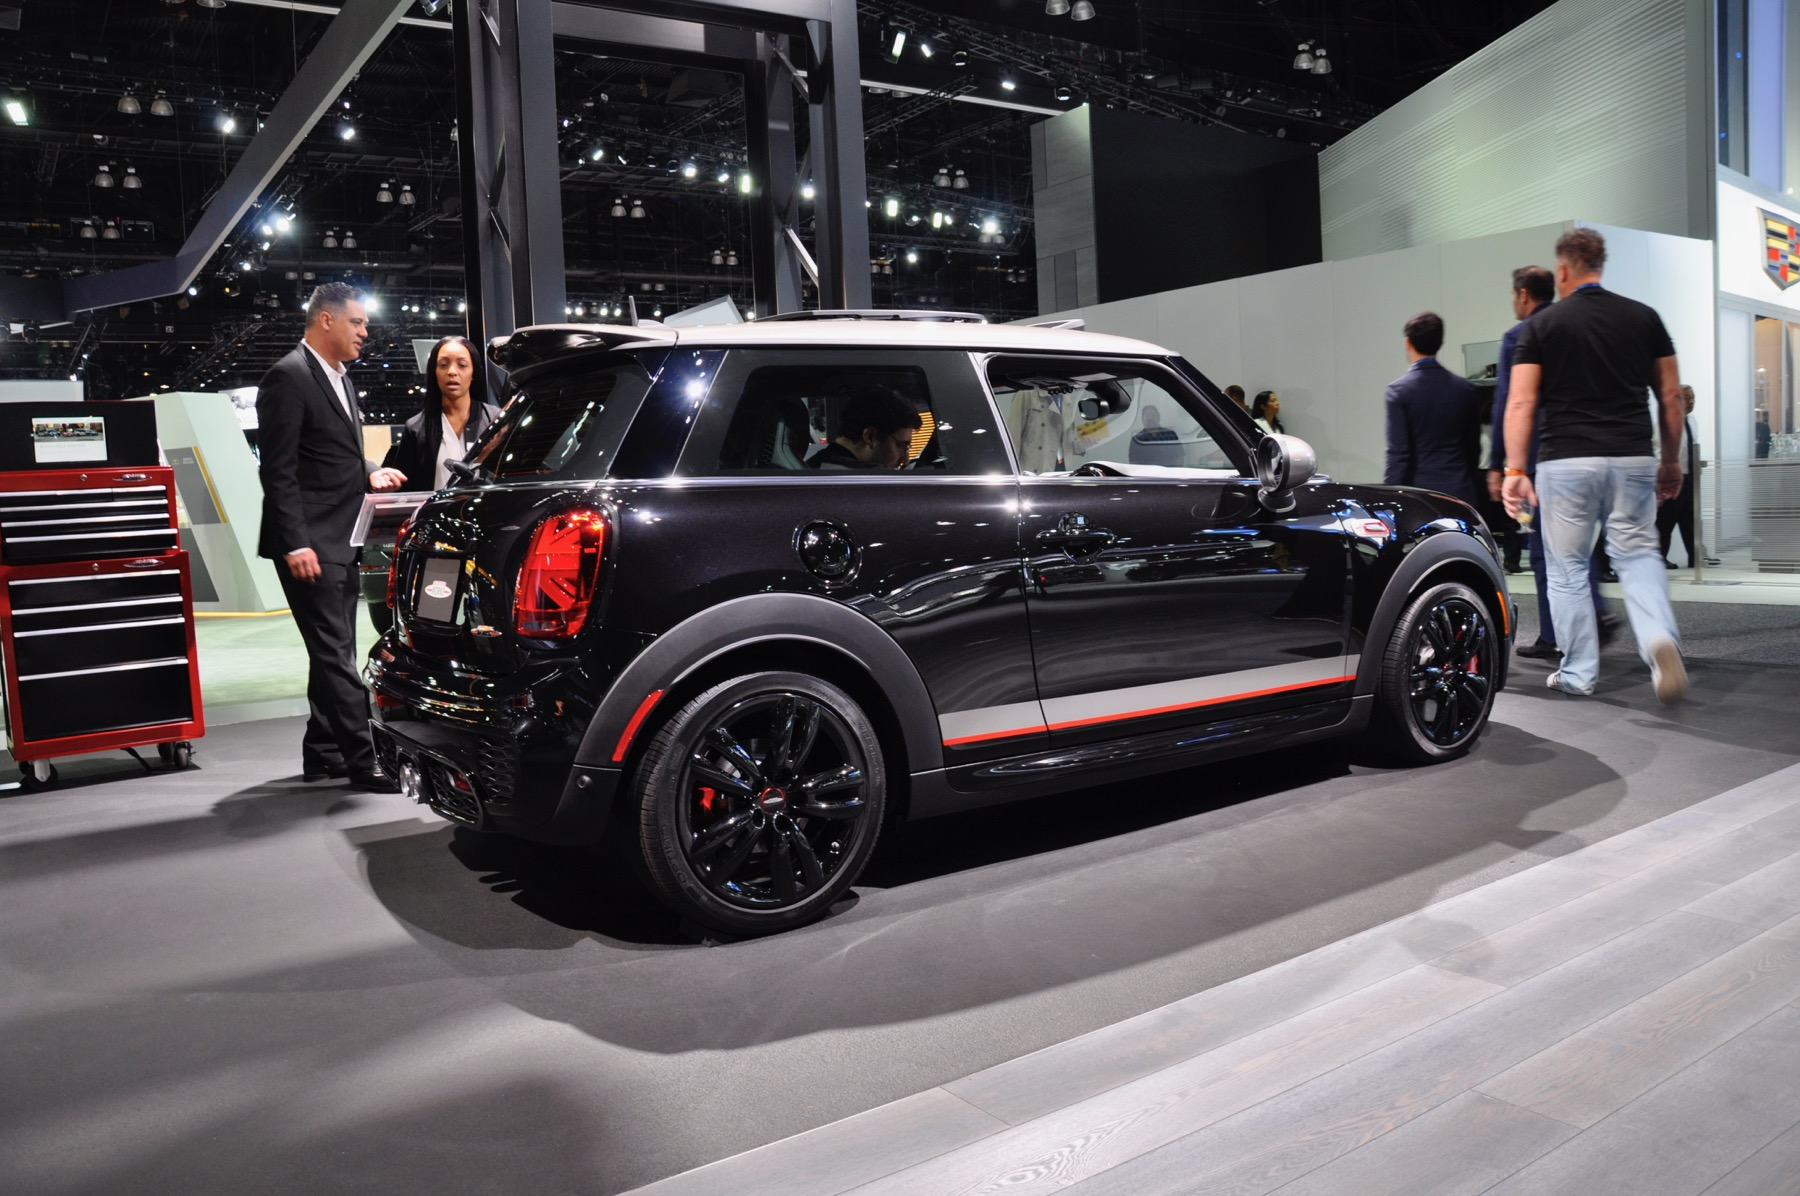 Hands On With The 2019 Mini Jcw Knights Edition Motoringfile